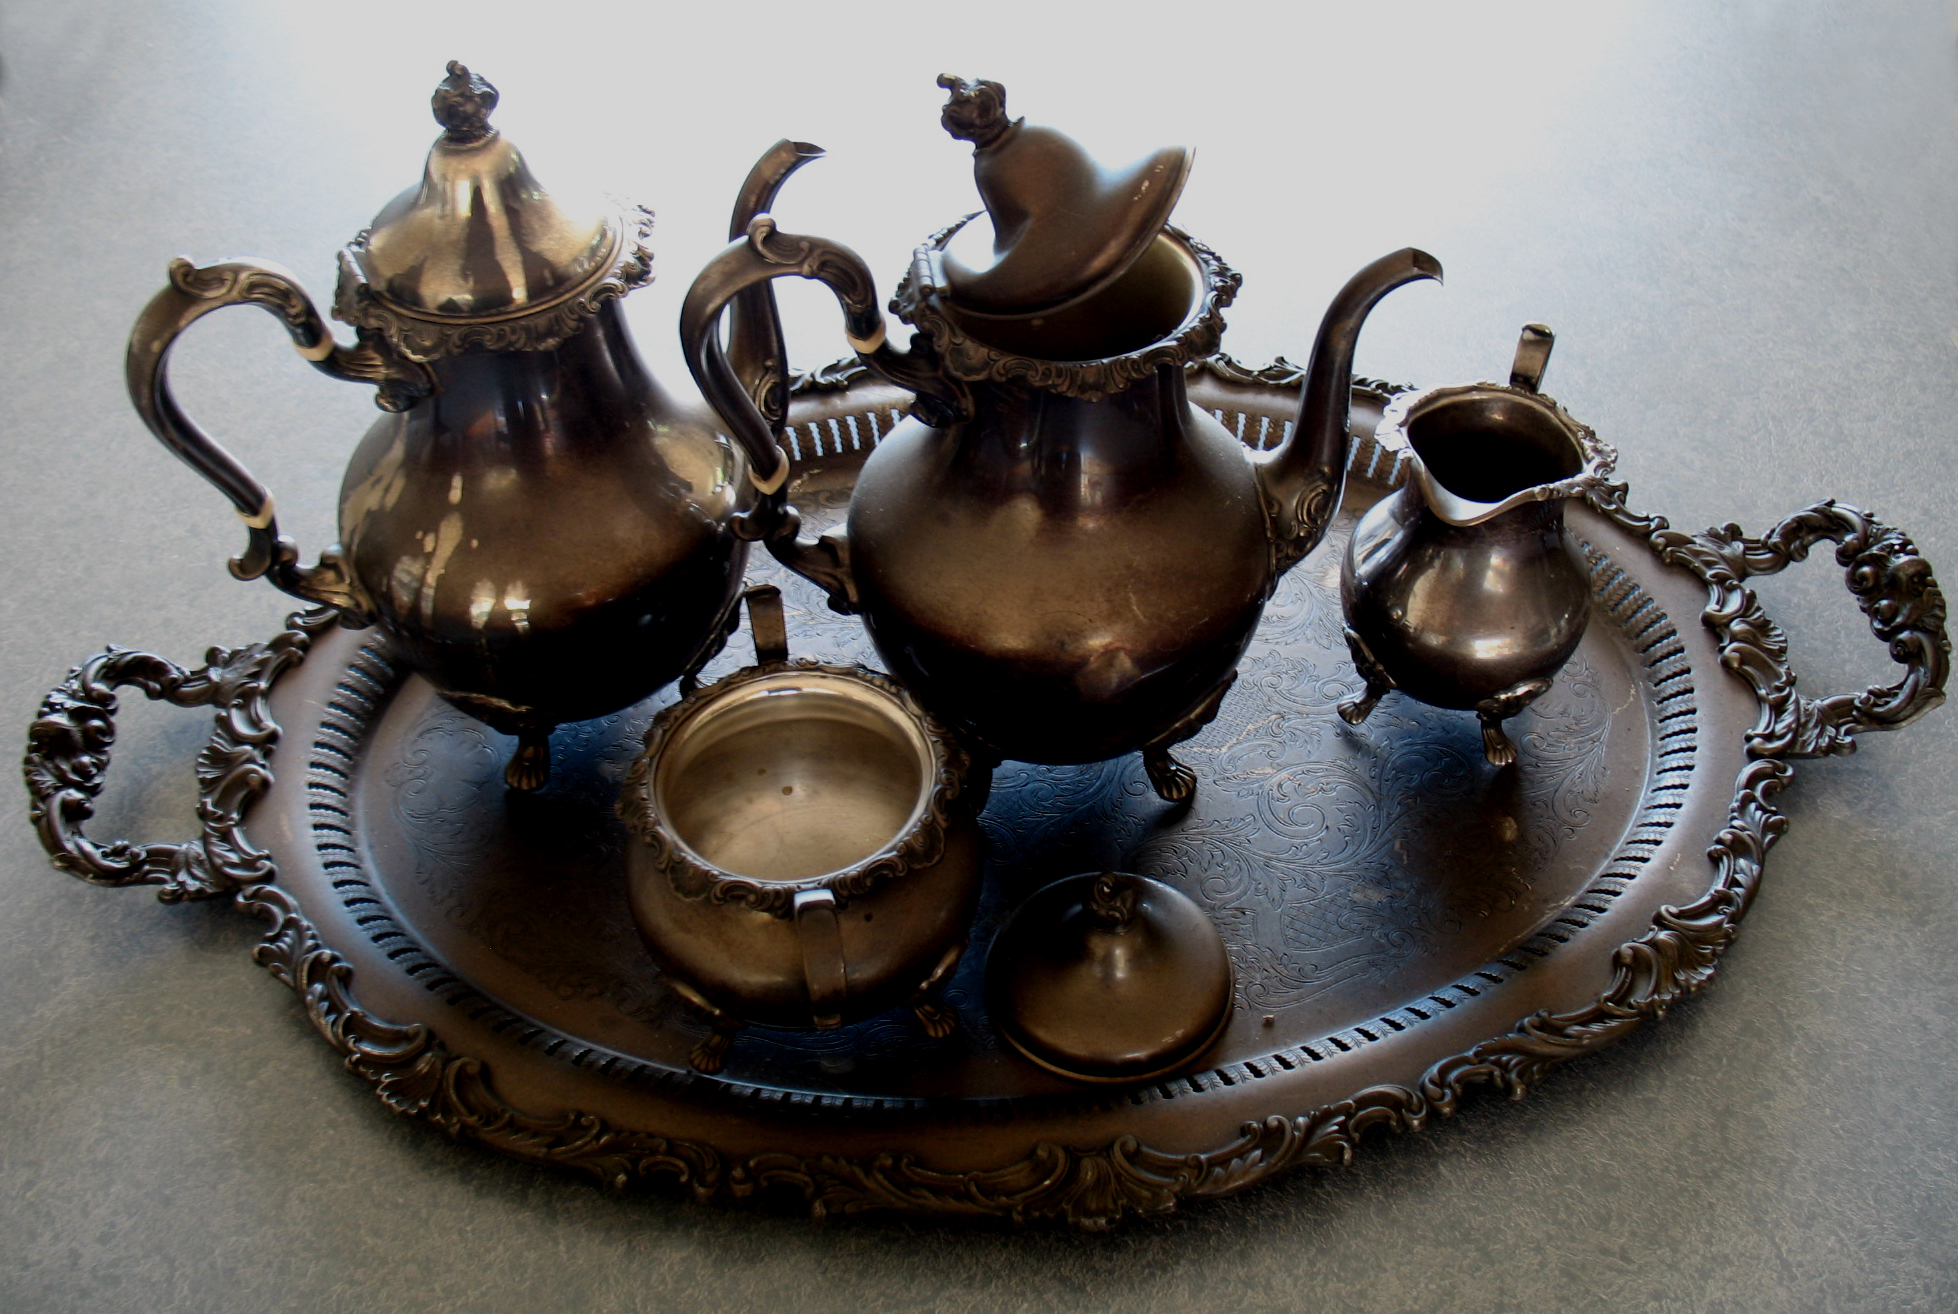 Sterling silver tea and coffee service covered with soot from fire